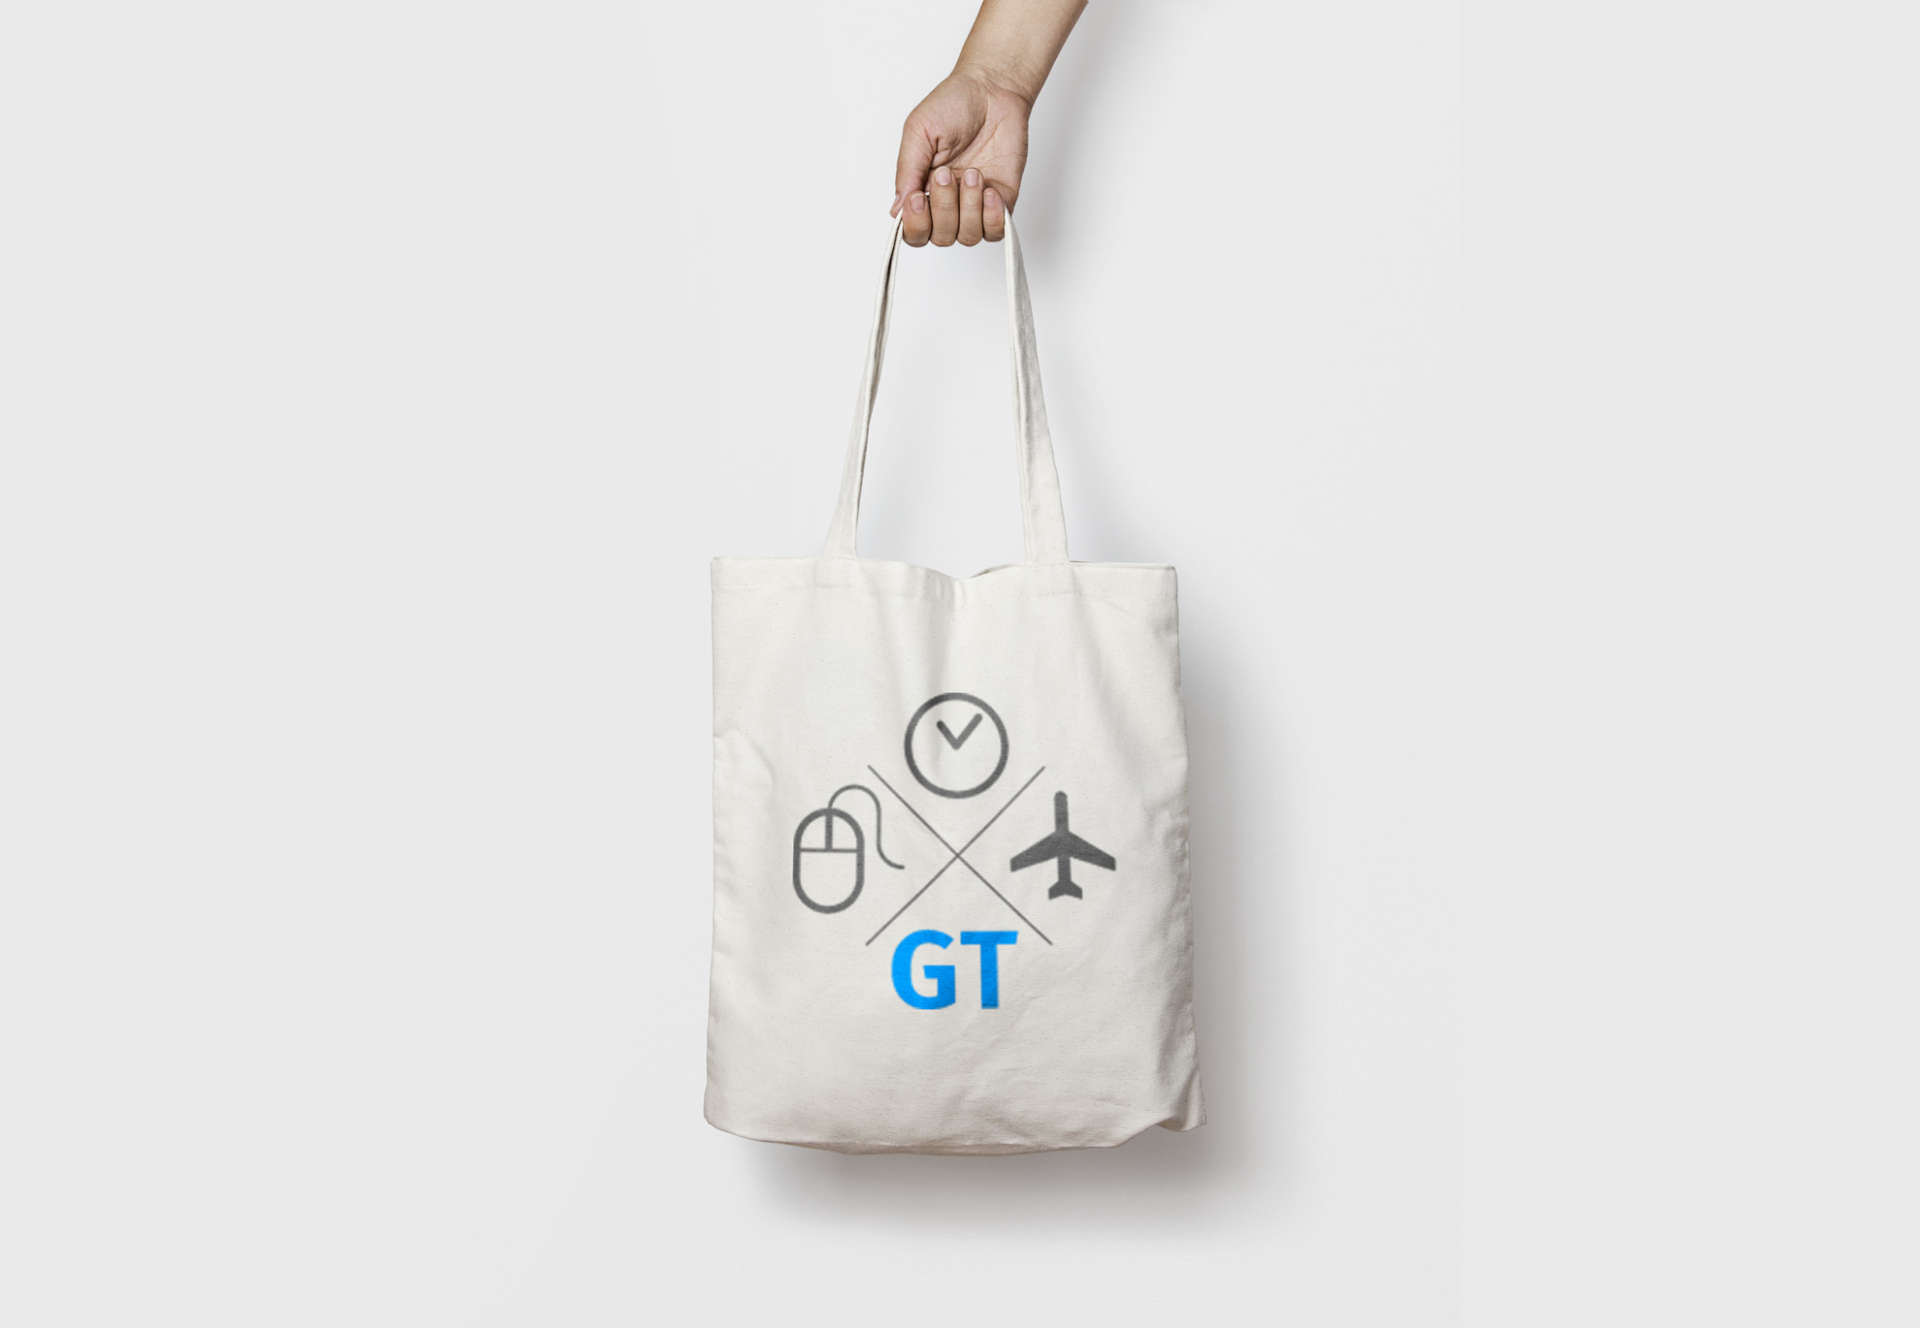 Get-Travel-totebag